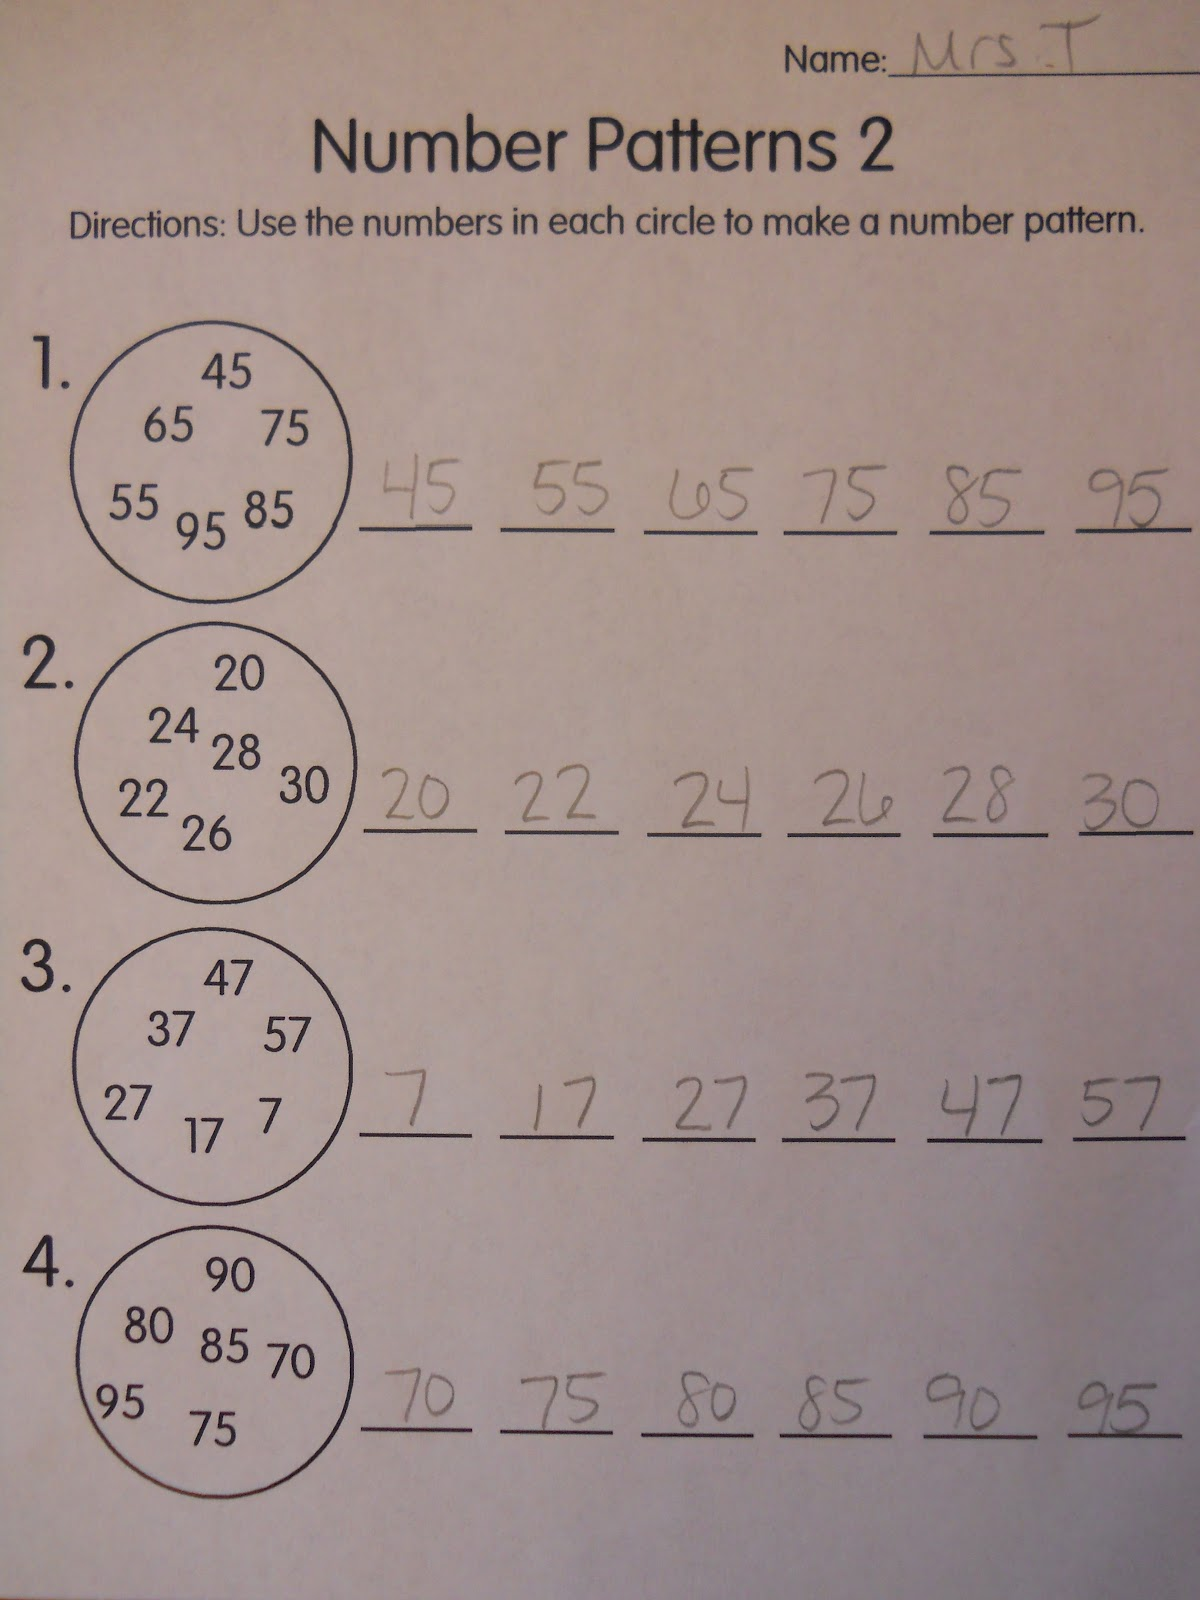 In And Out Rule Math Worksheet For Grade 1